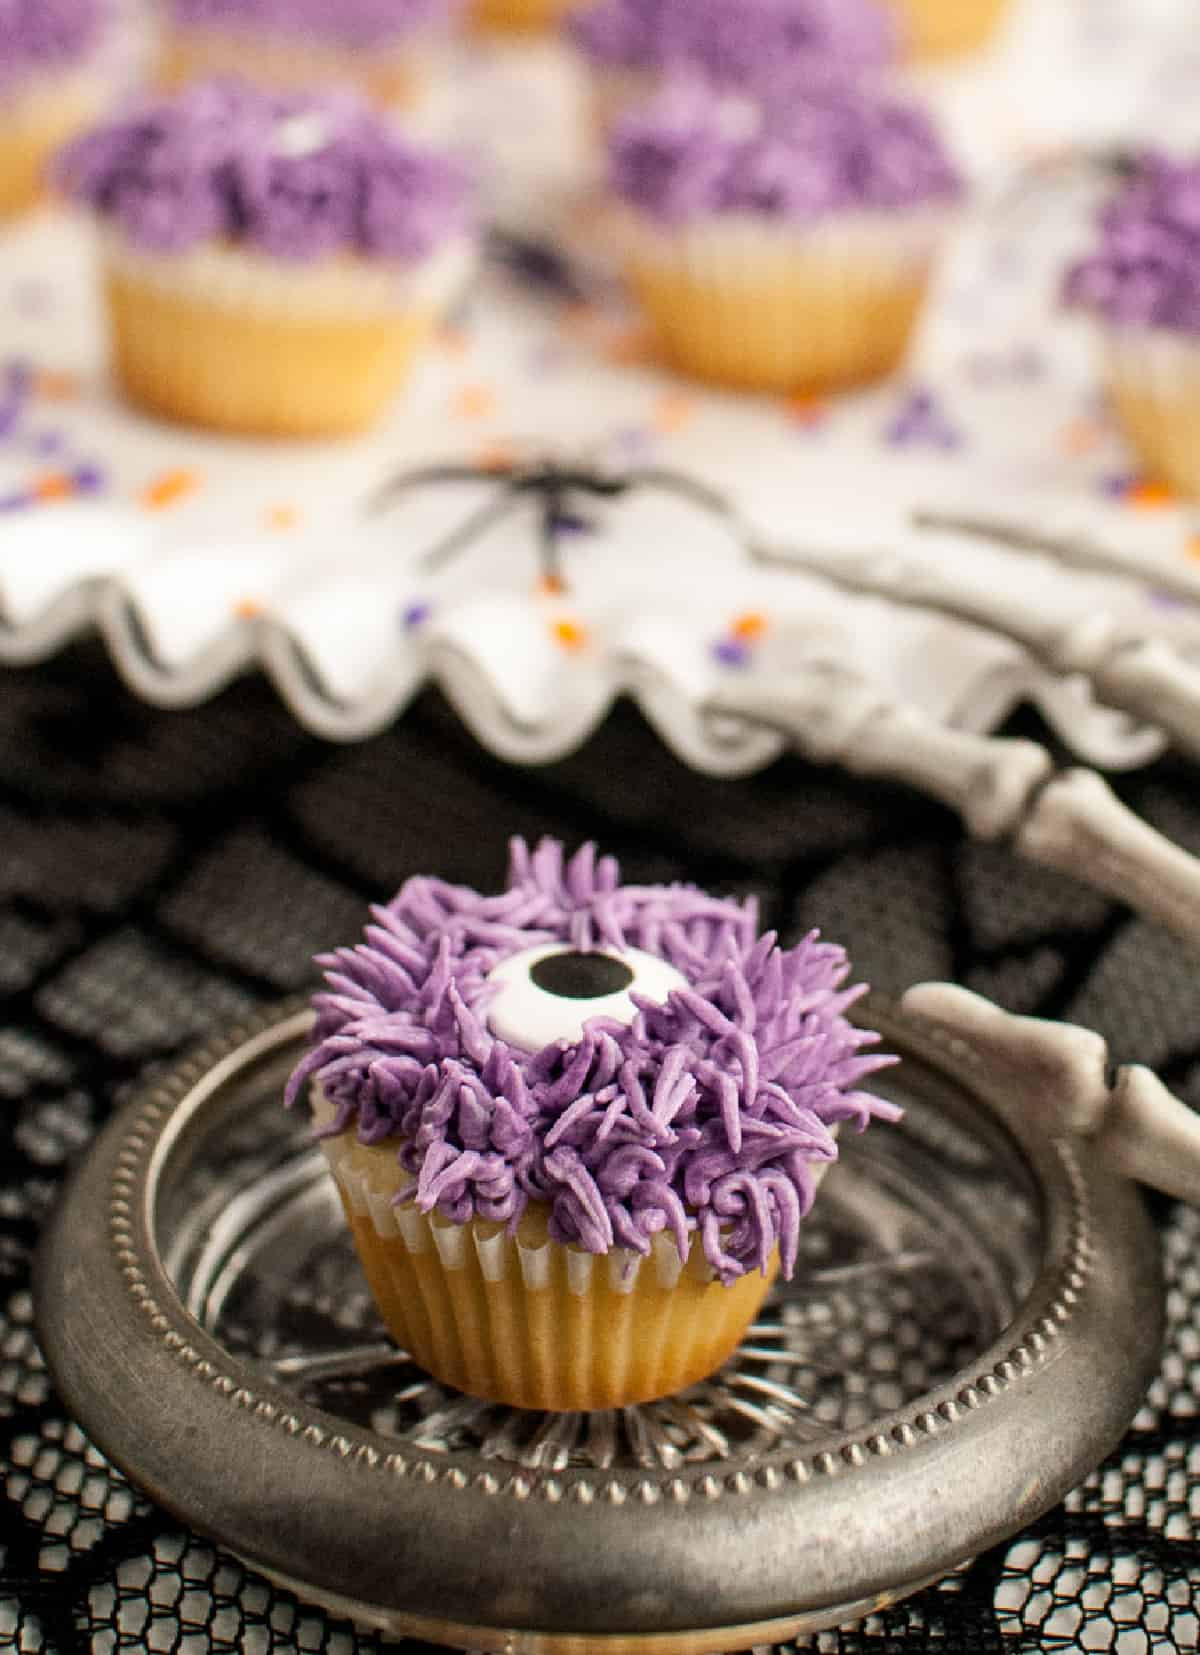 A purple monster cupcake on a small silver plate with a sceleton hand on the side.